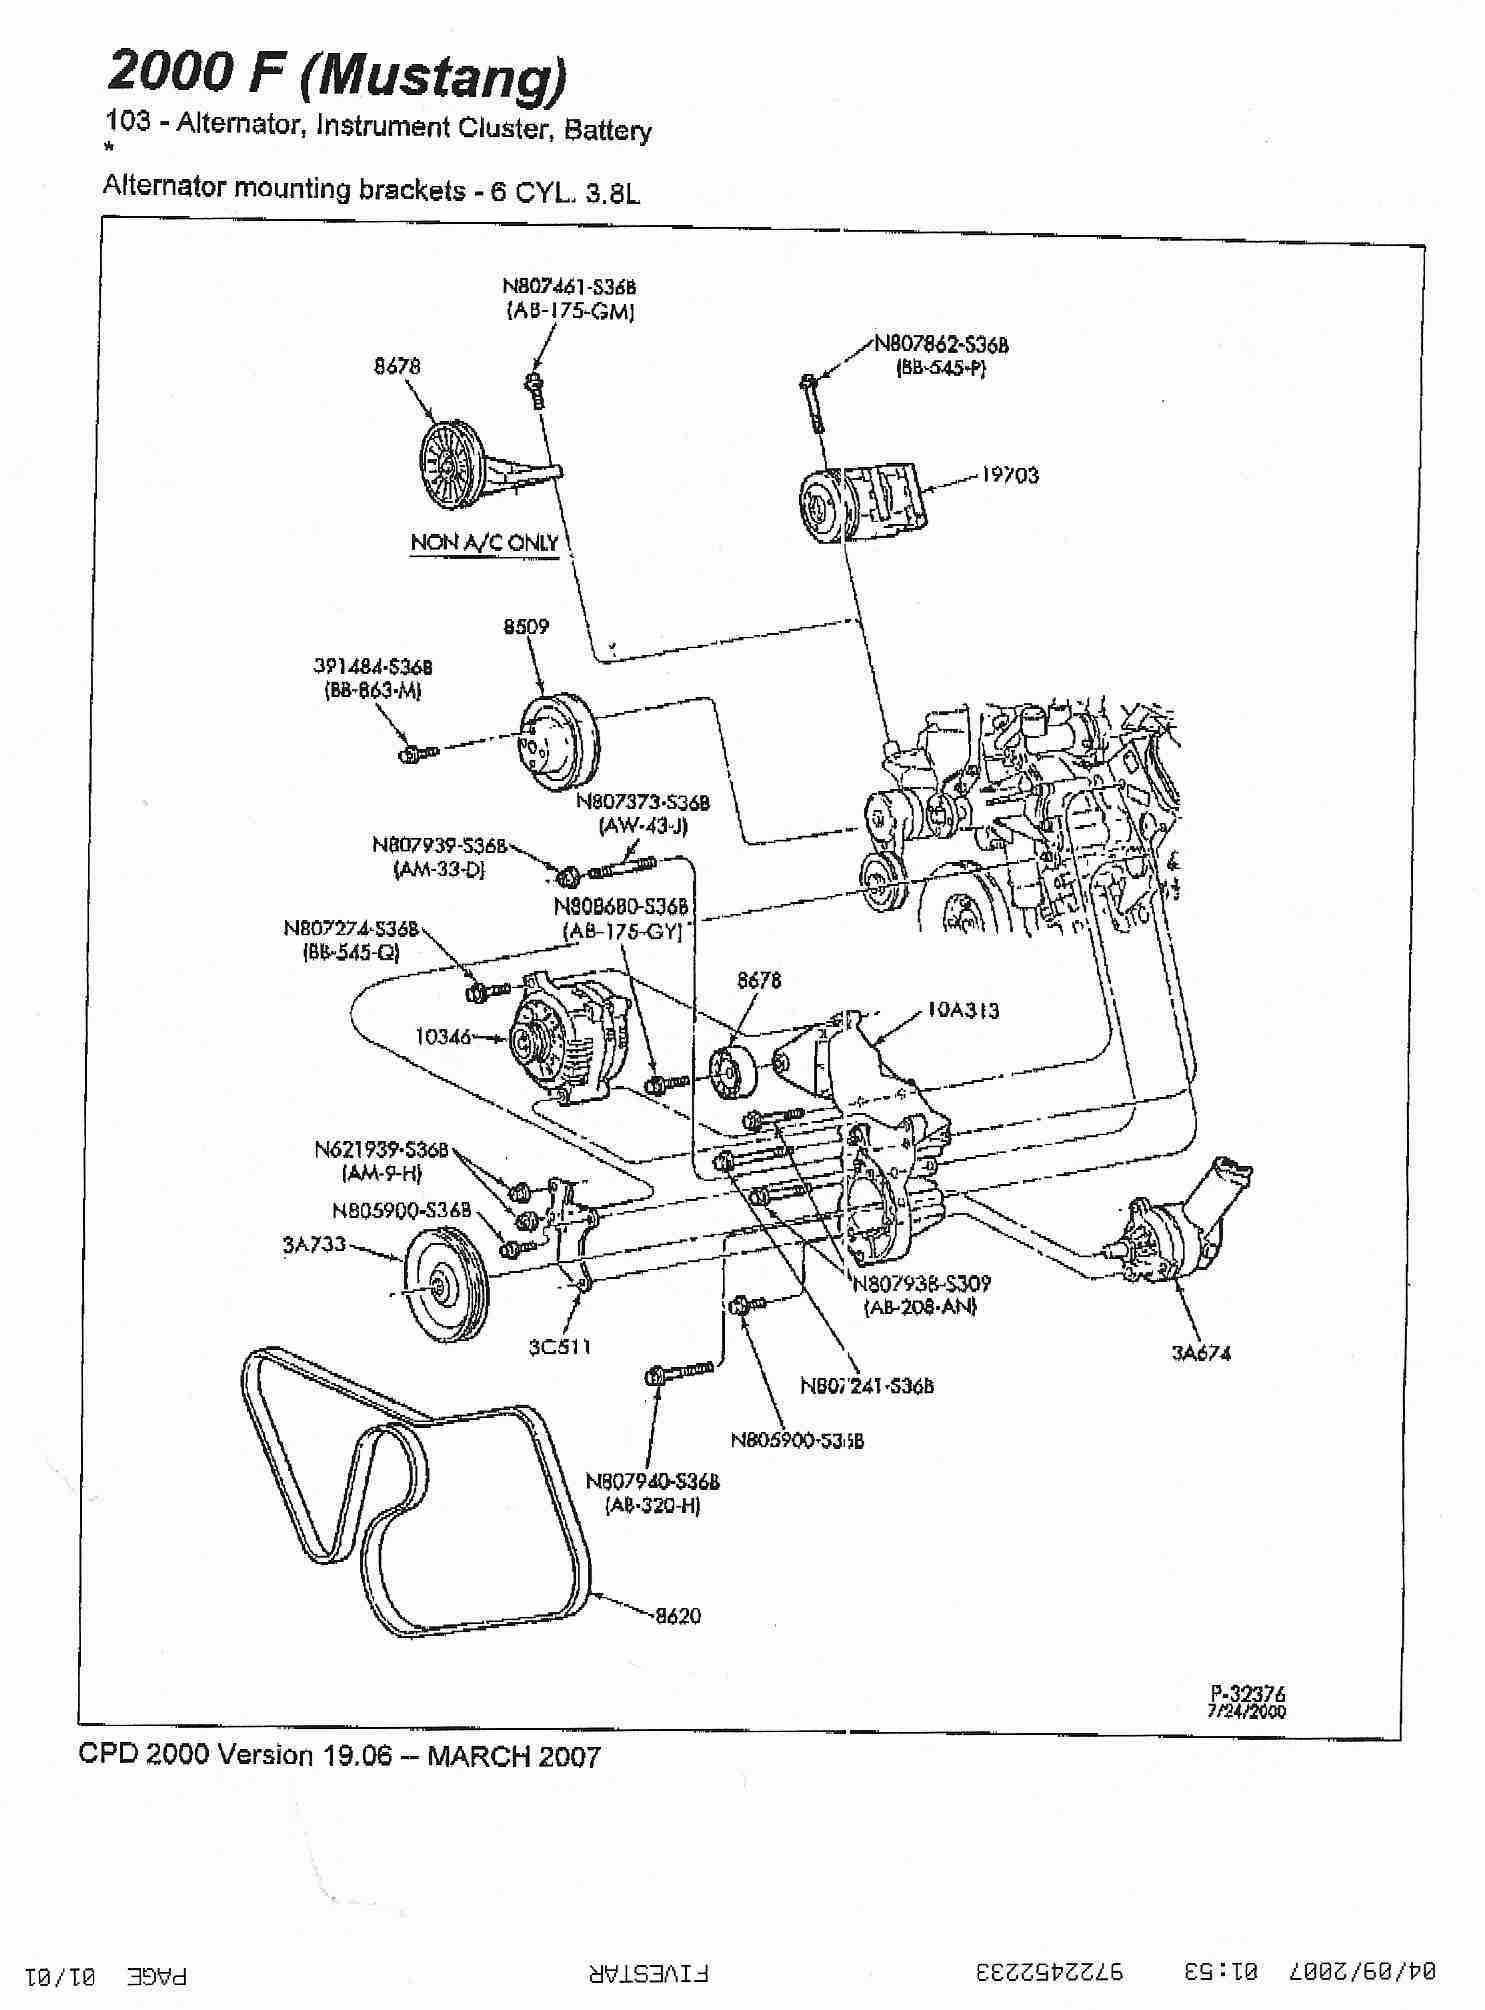 2004 Mustang Engine Wiring Diagram Schematics Diagrams Ford Radio 99 Rh Enr Green Com